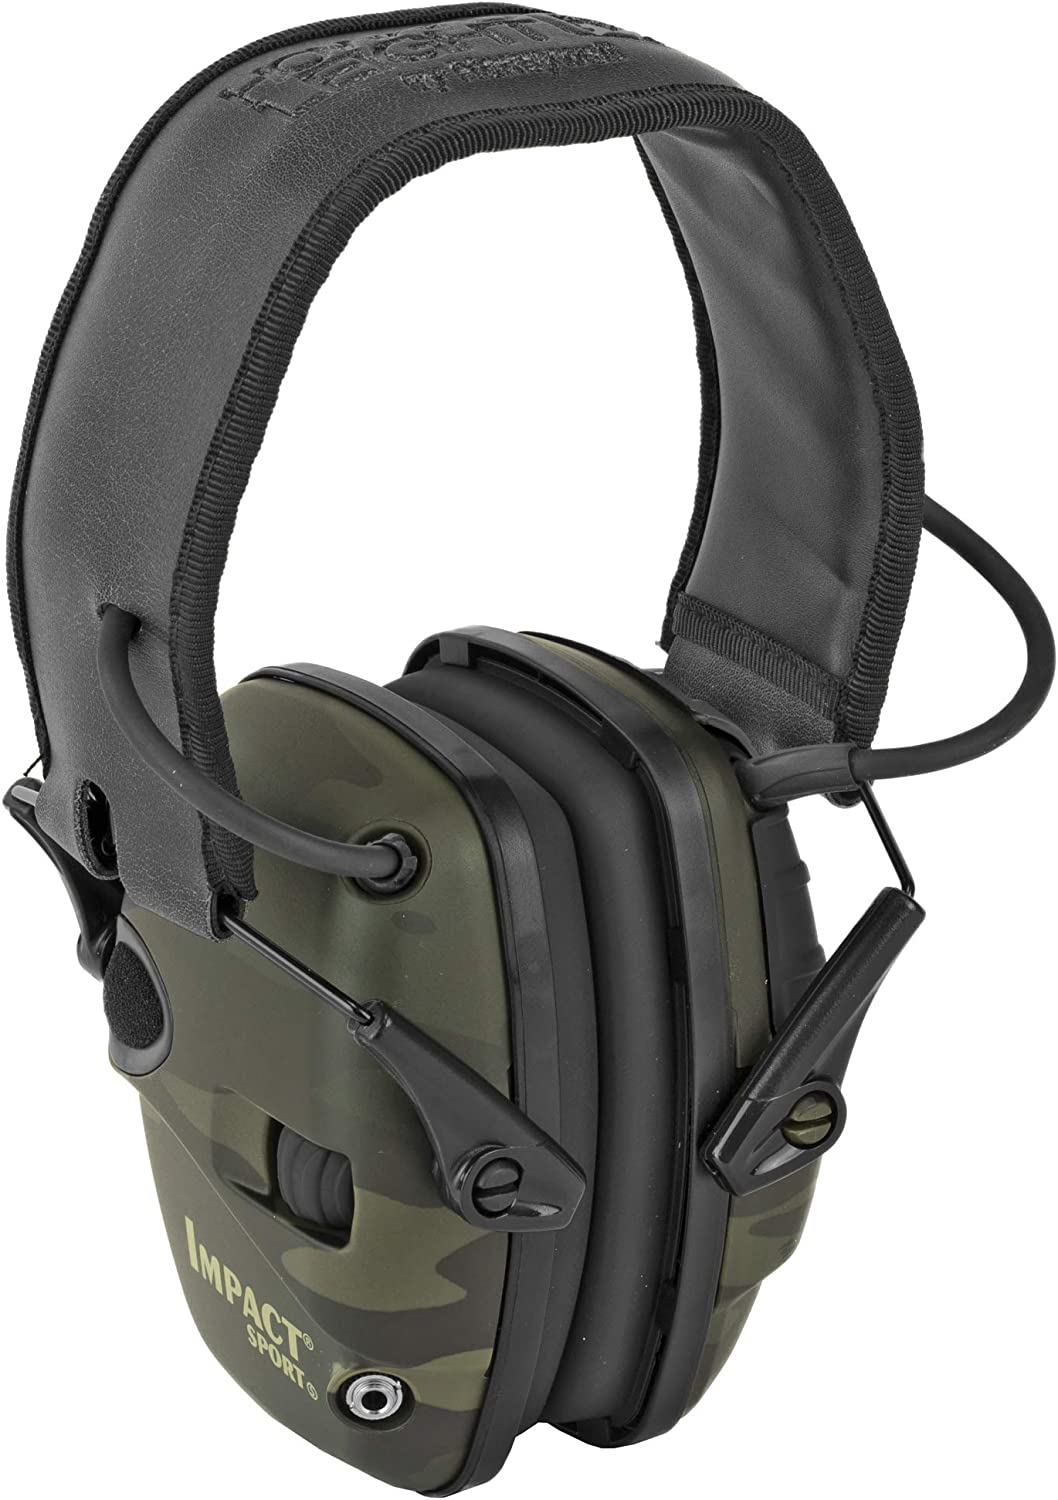 Howard Leight by Honeywell Impact Sport Sound Amplification Electronic Shooting Earmuff, Multicam Black R-02527